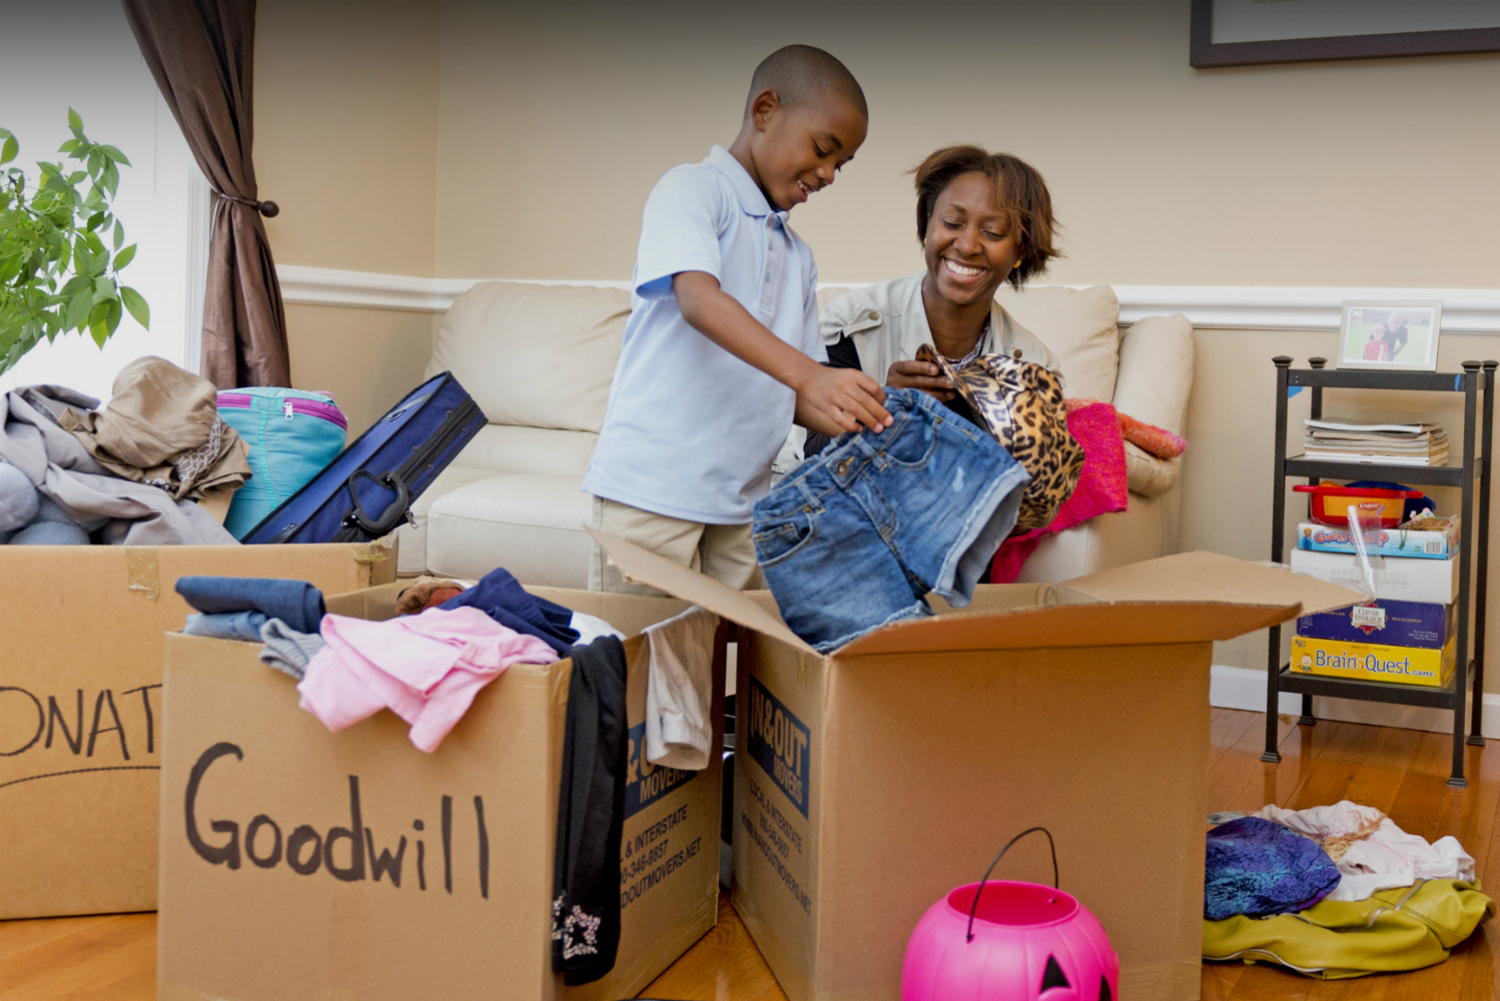 Free local Goodwill donation pickup and delivery with Roadie on